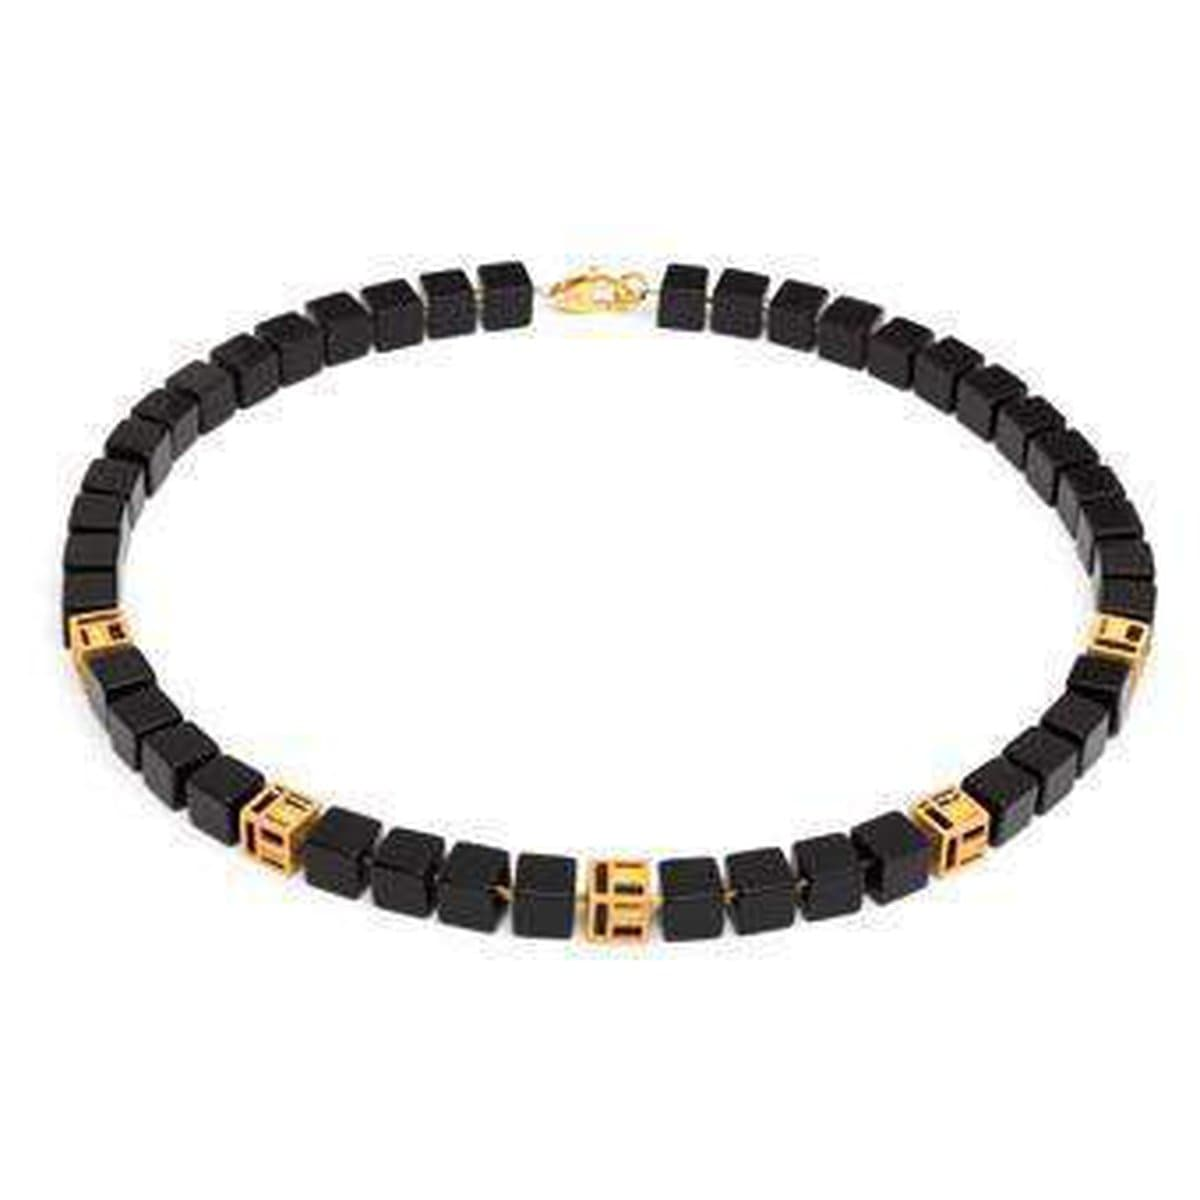 Cubian Onyx Necklace - 84483806-Bernd Wolf-Renee Taylor Gallery